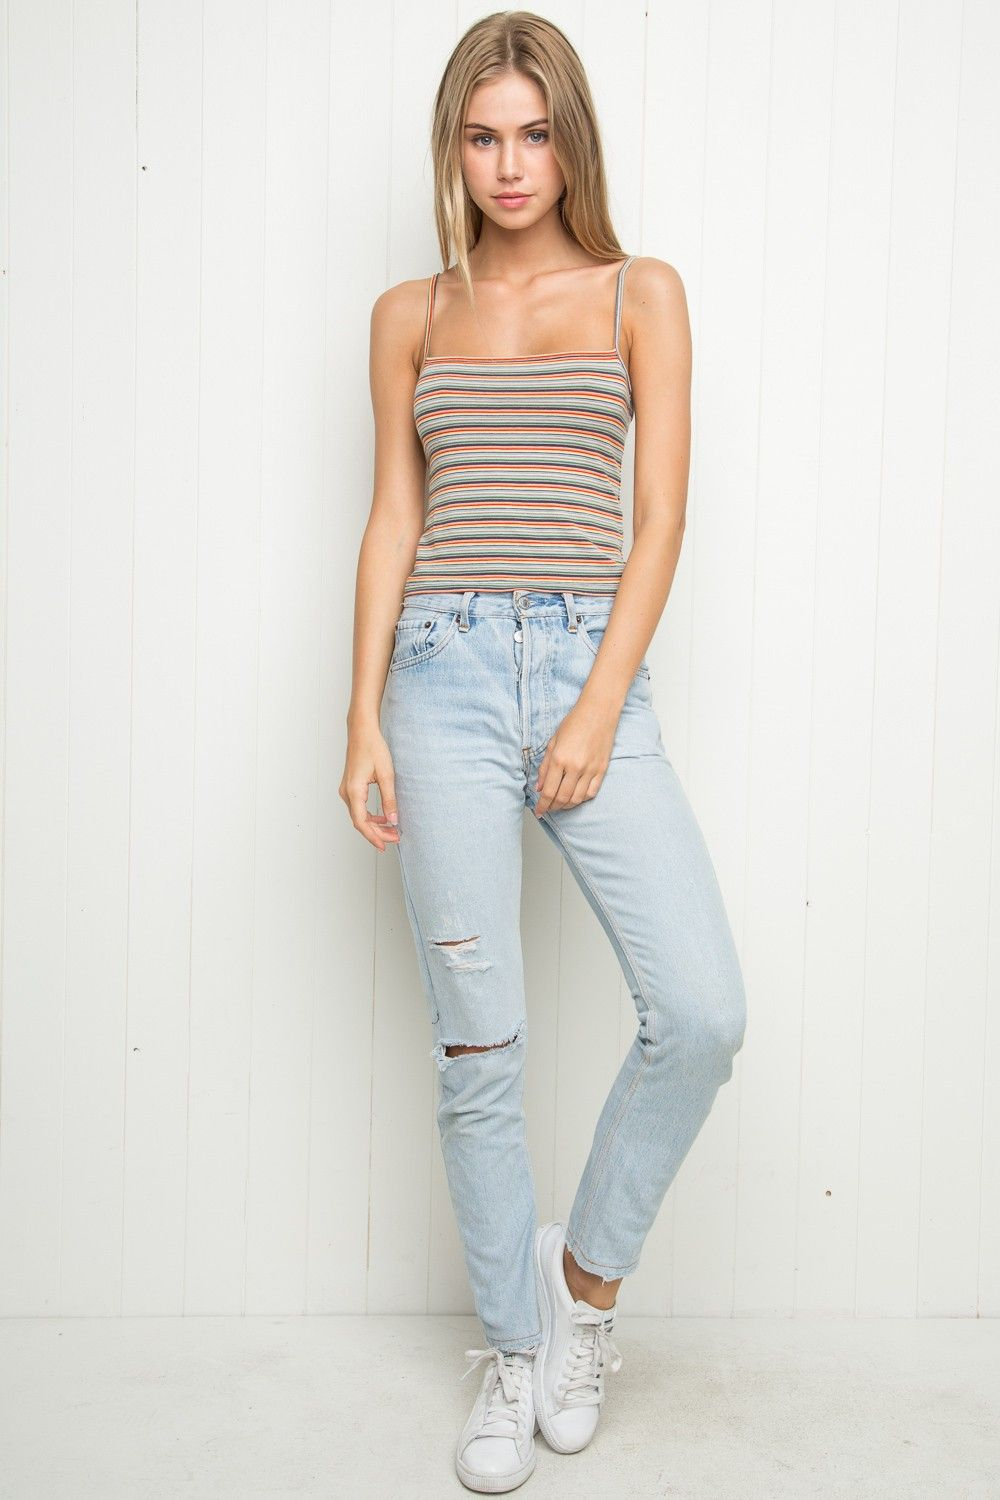 a0fee2c25842ef Welcome to Brandy Melville USA